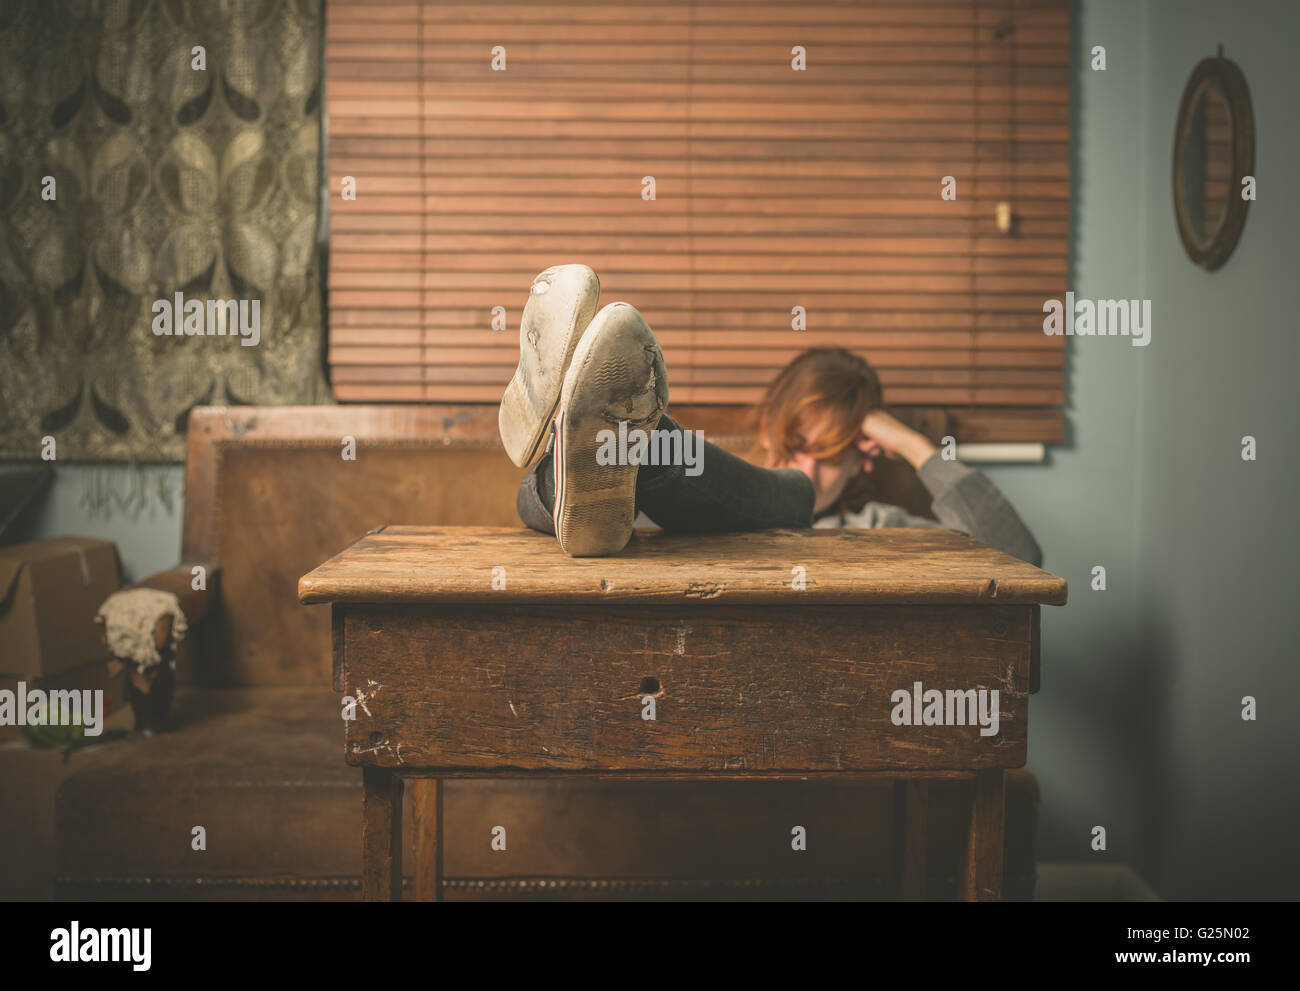 A young woman wearing worn out shoes is resting her feet on a table at home - Stock Image